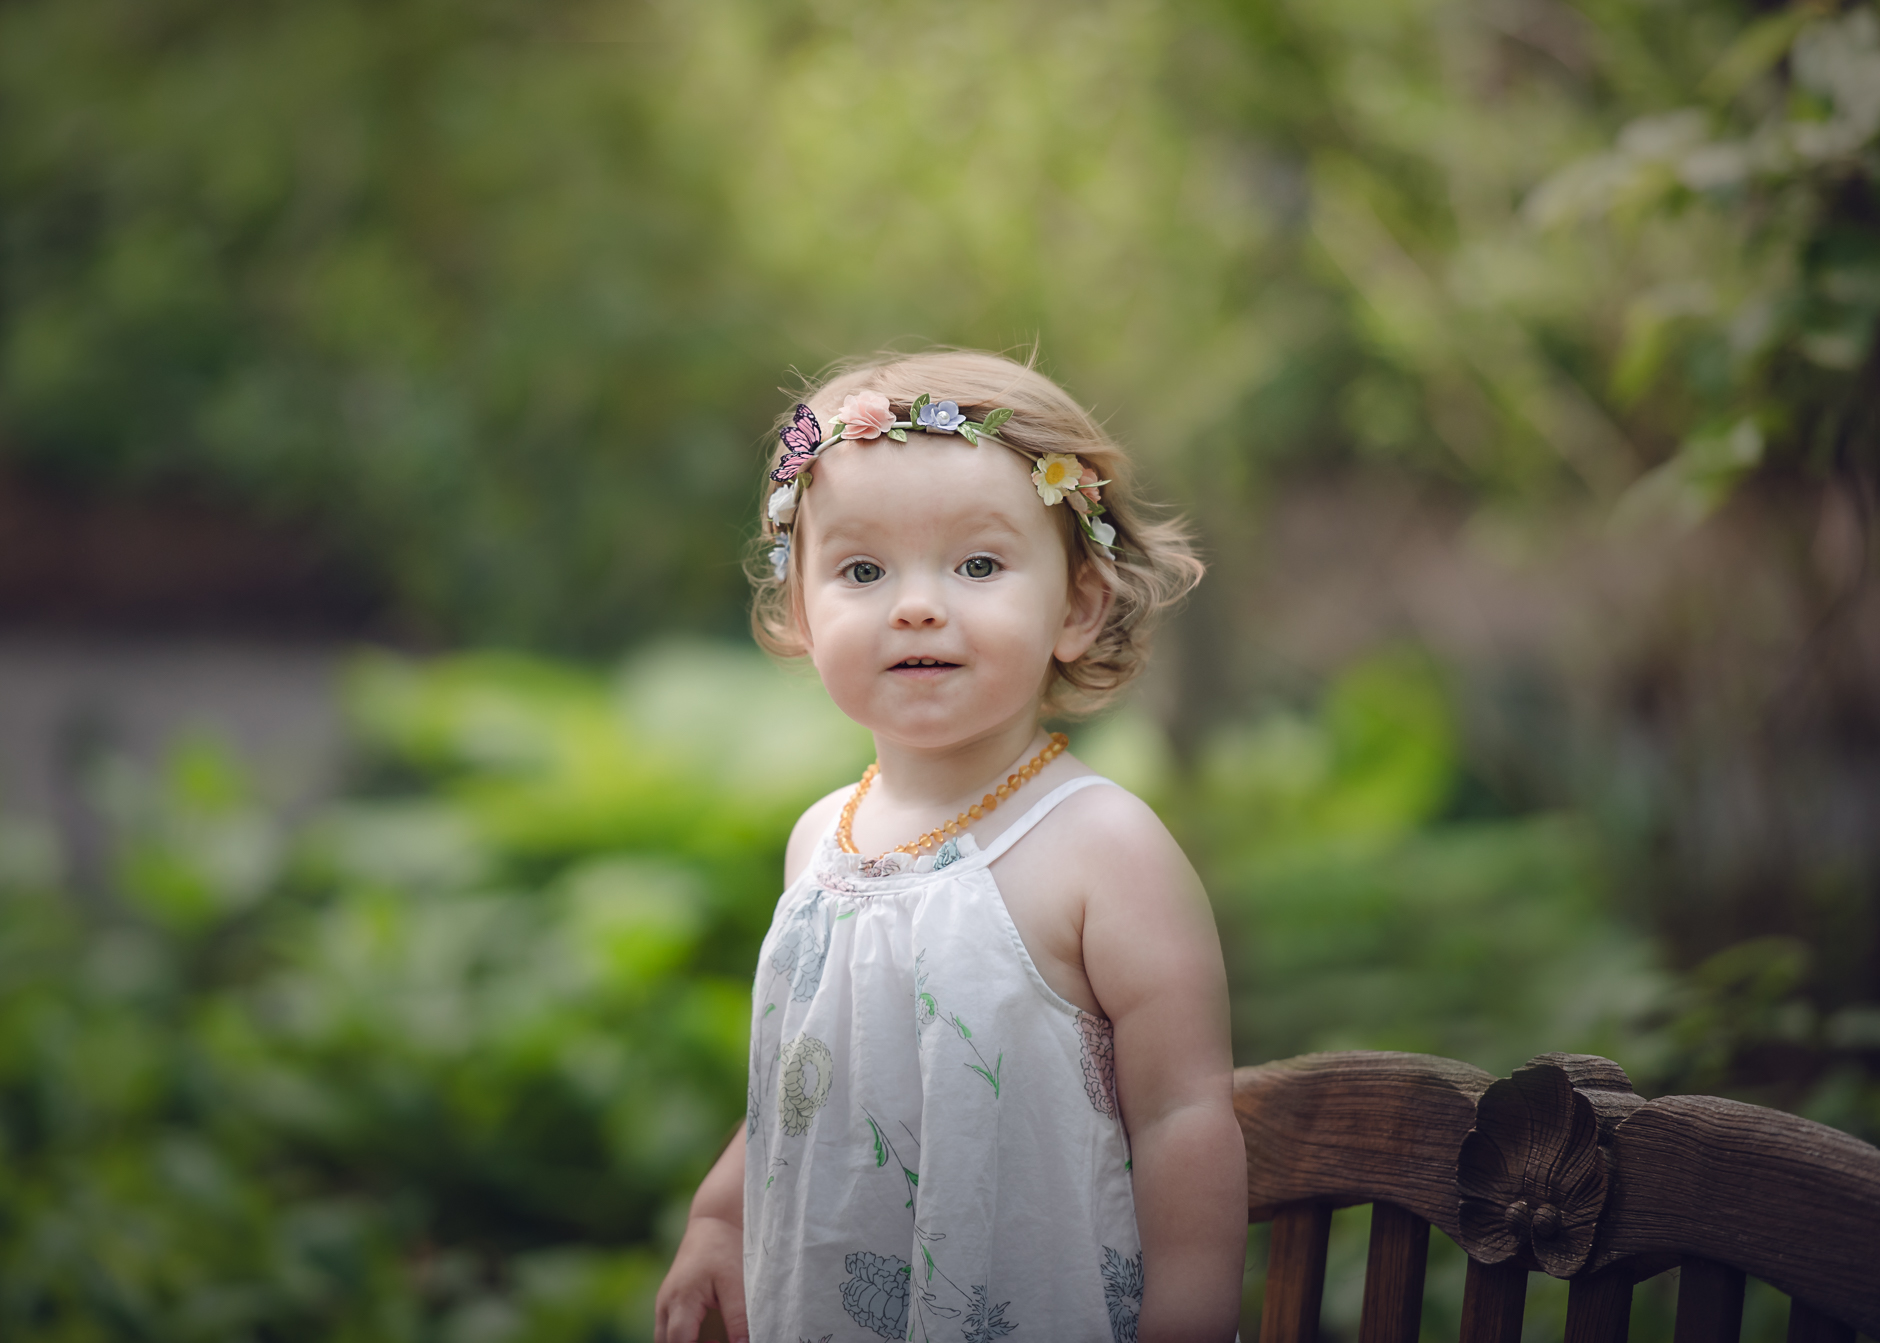 St-louis-child-photographer-Botanical-gardens-photoshoot-vanessa-smith-photography (6 of 11)